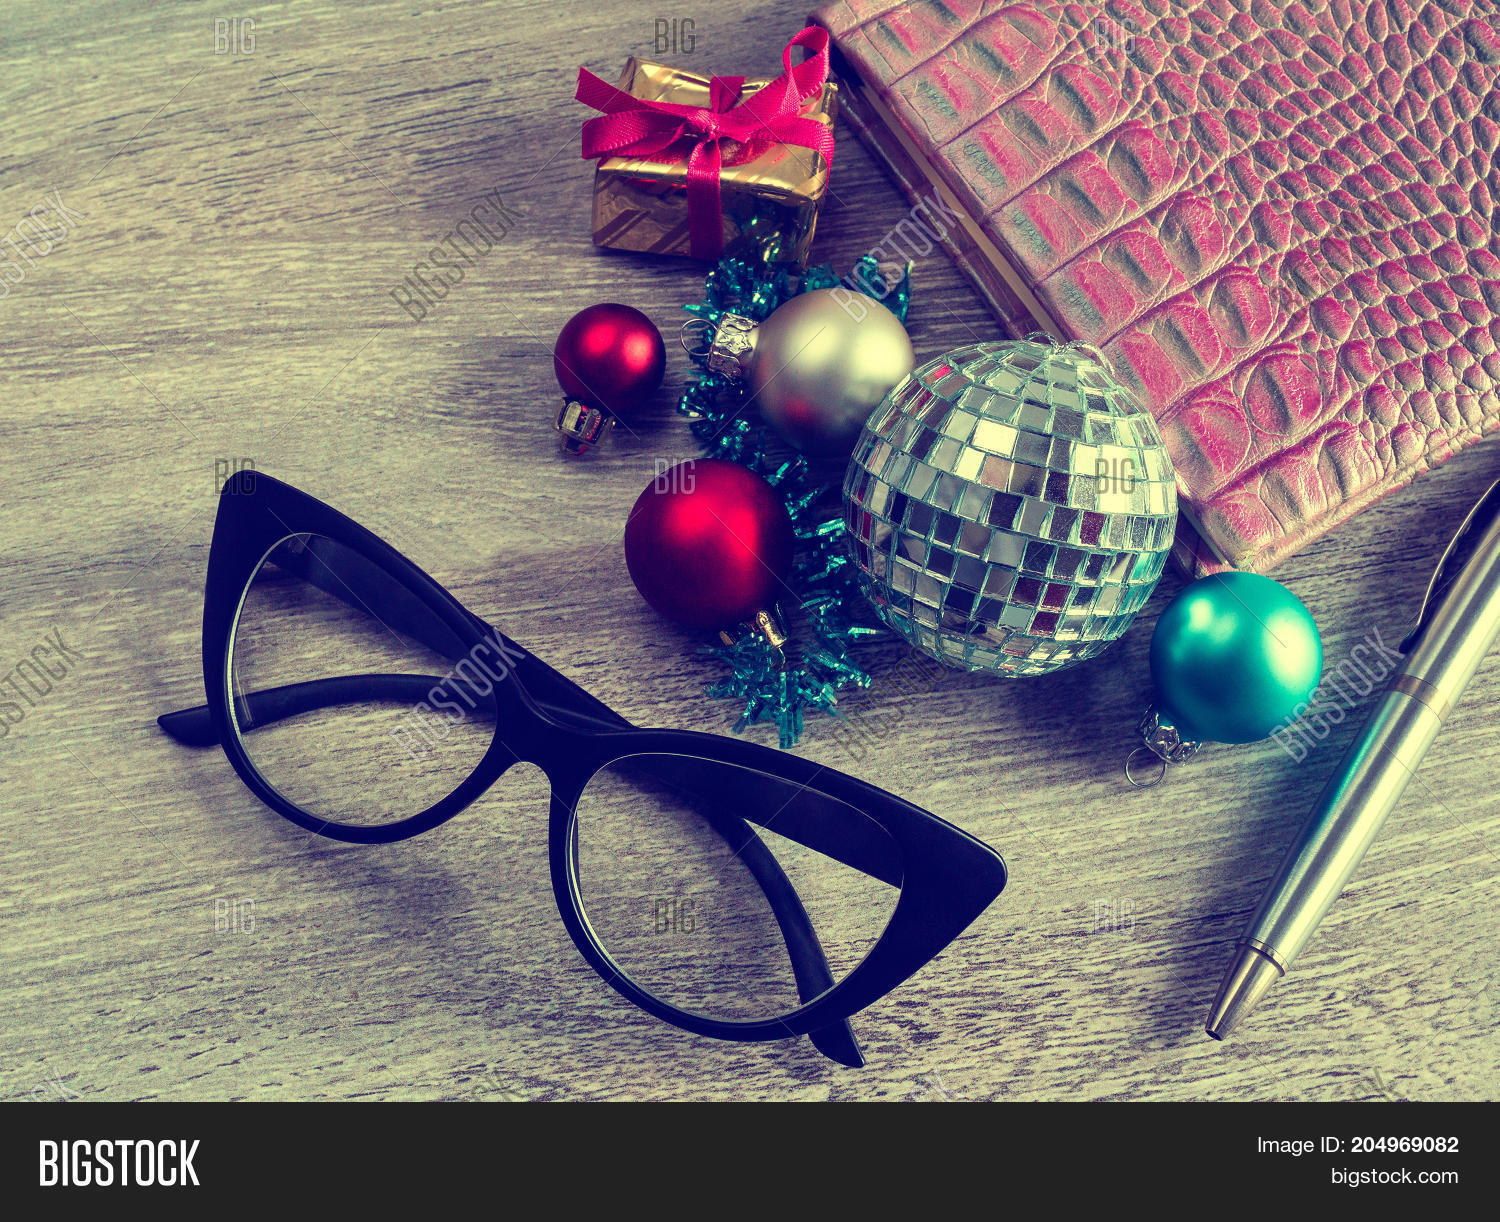 Business Christmas office on workplace with a tie pen glasses and Christmas decorations. Business and